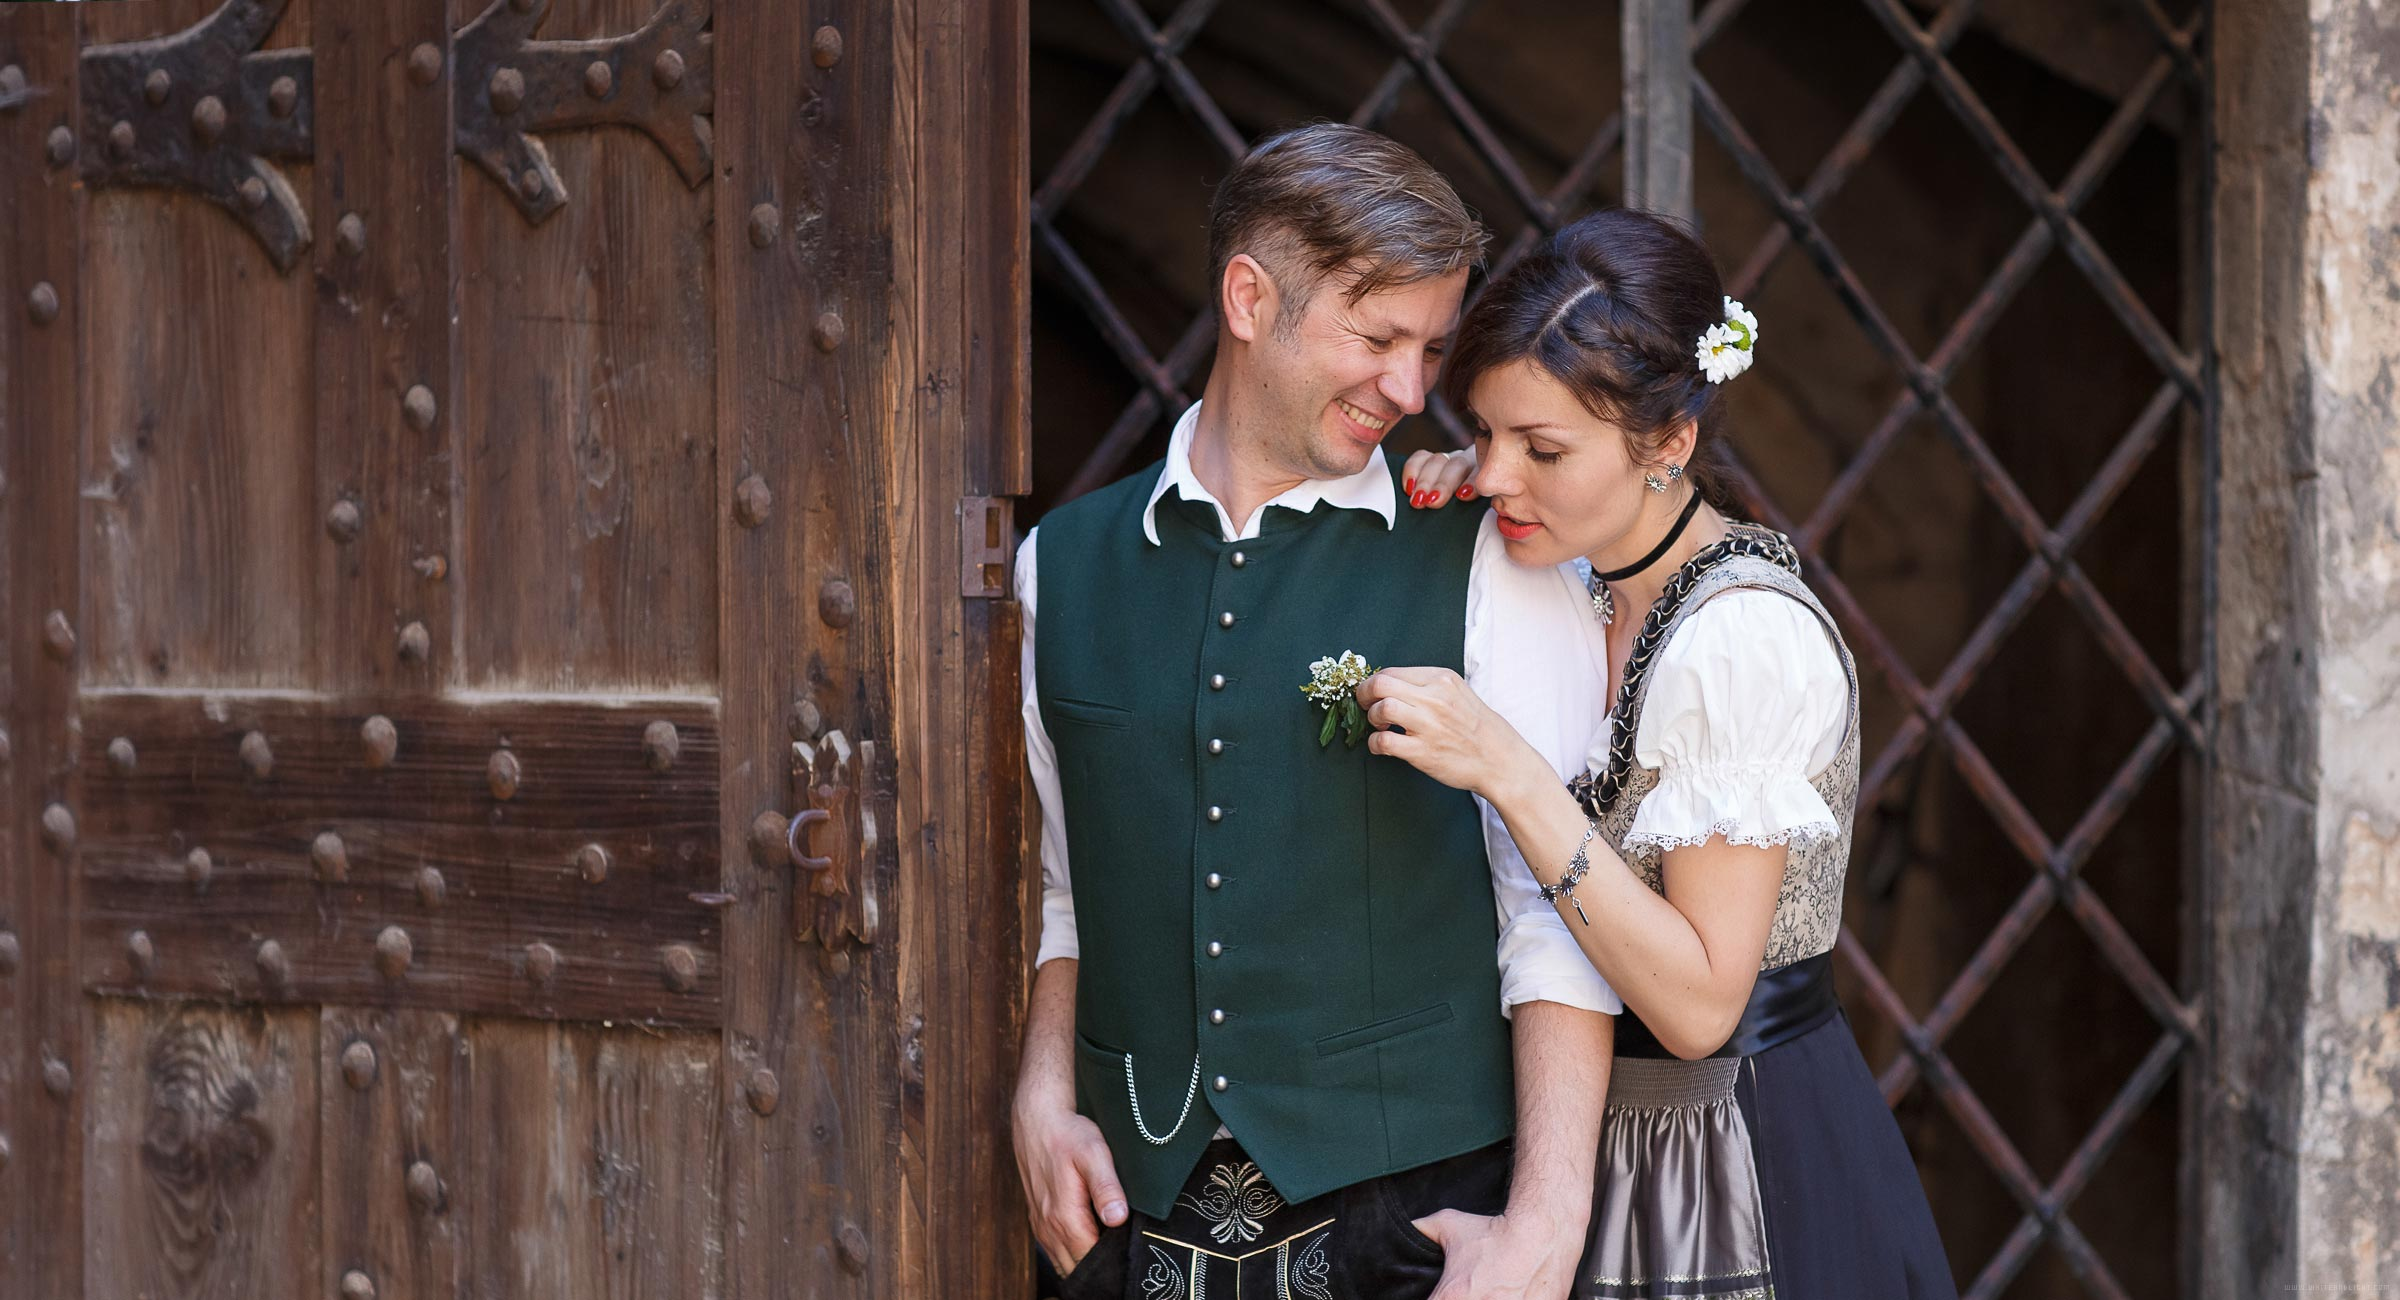 Bavarian wedding dress